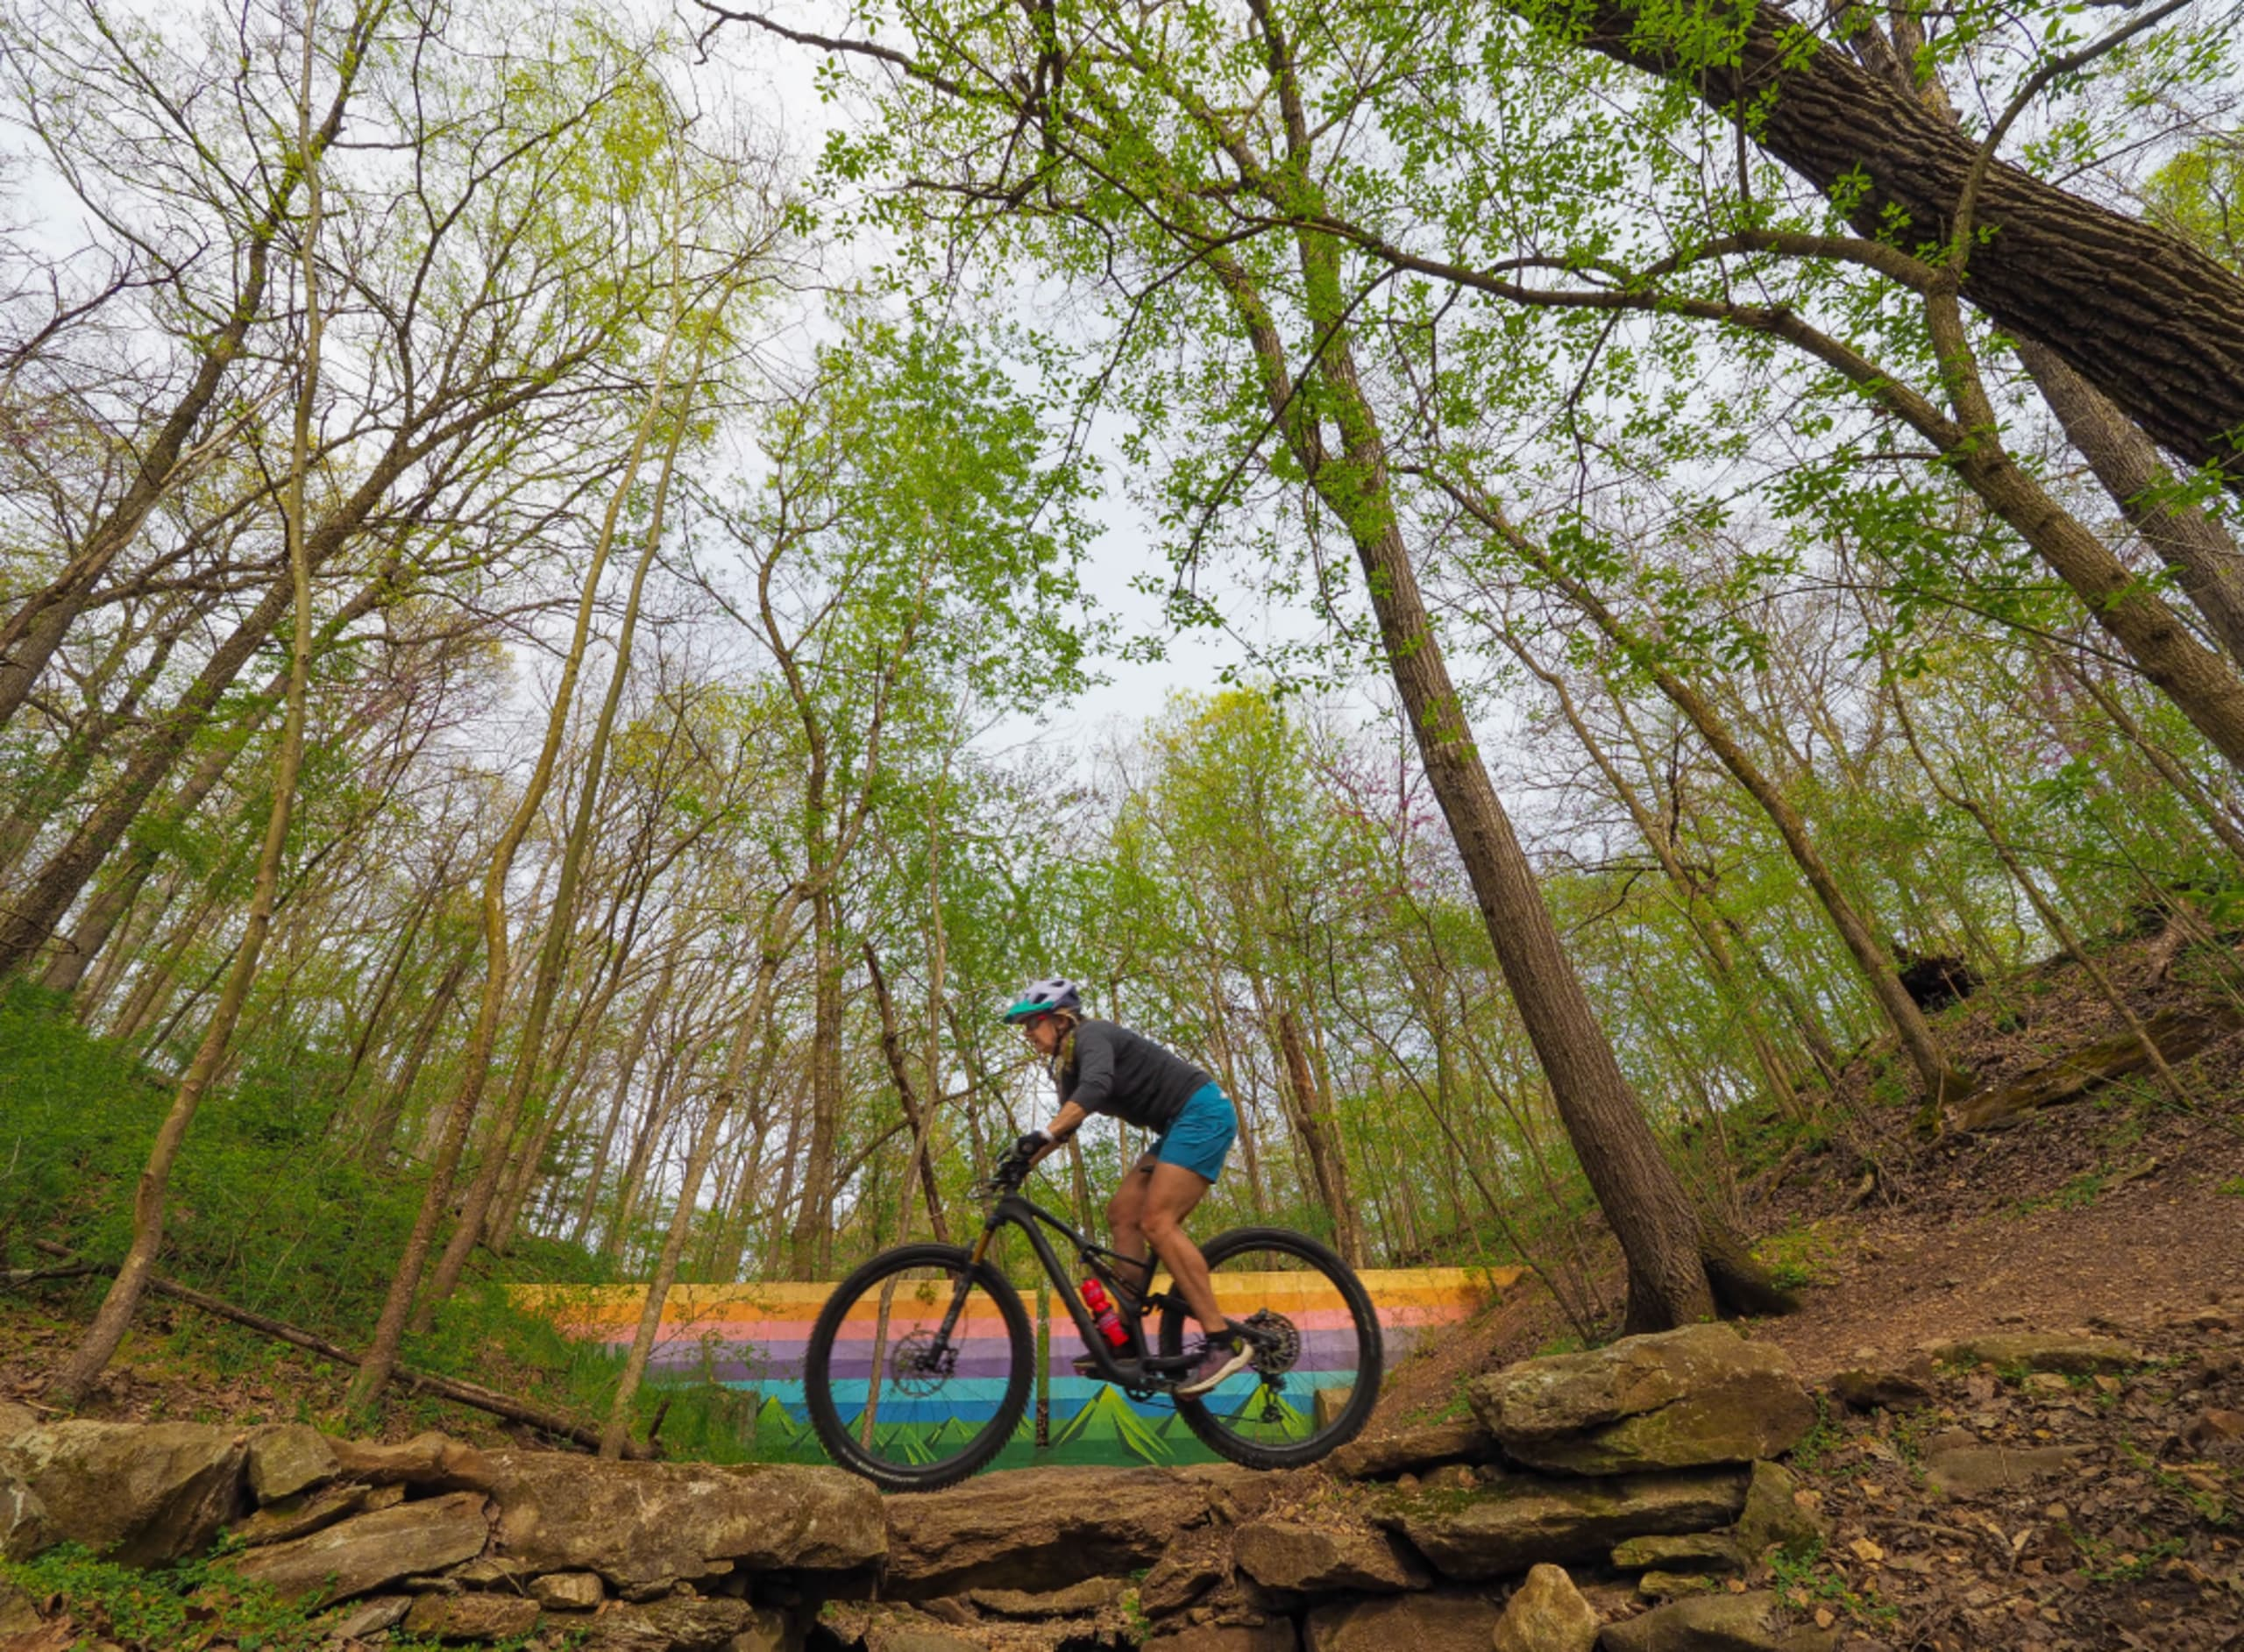 Bike to Bentonville for 150 miles of trails and much more